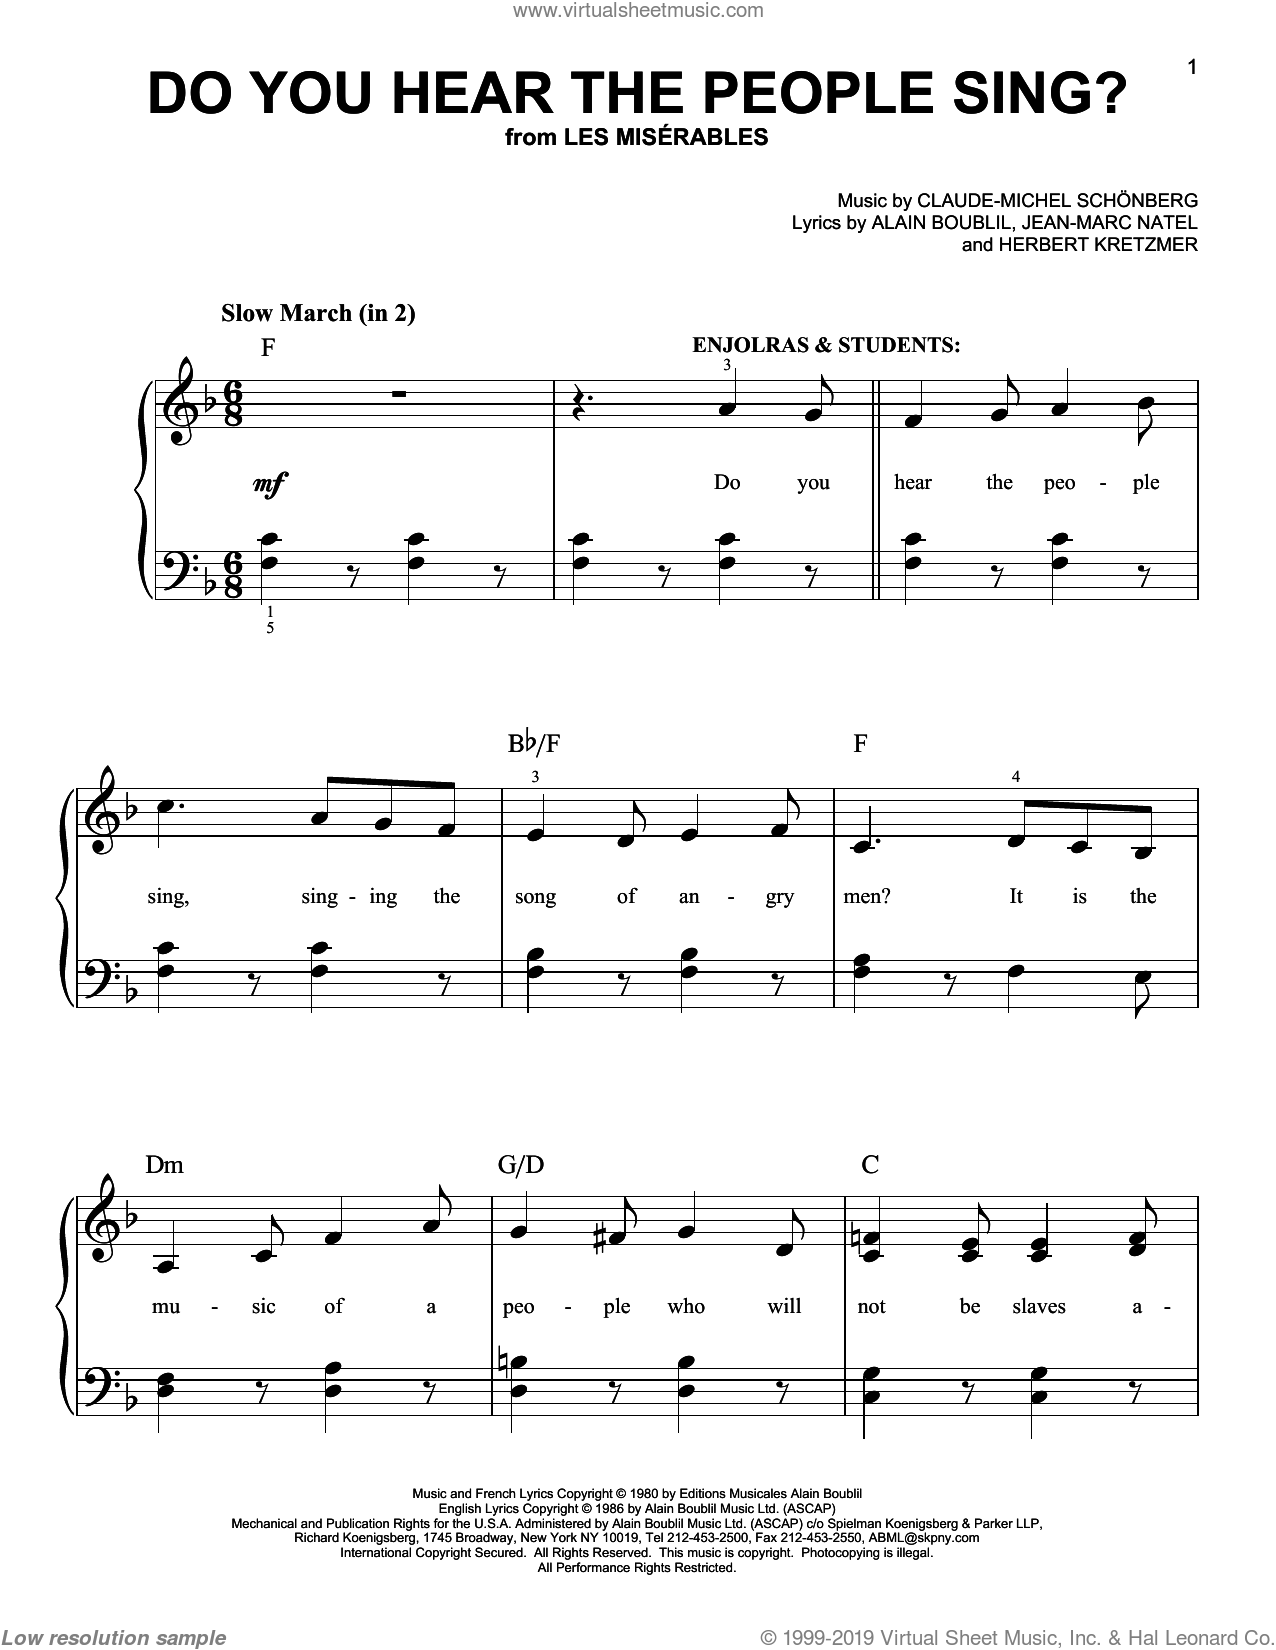 Do You Hear The People Sing? sheet music for piano solo by Claude-Michel Schonberg, Alain Boublil and Herbert Kretzmer, beginner skill level